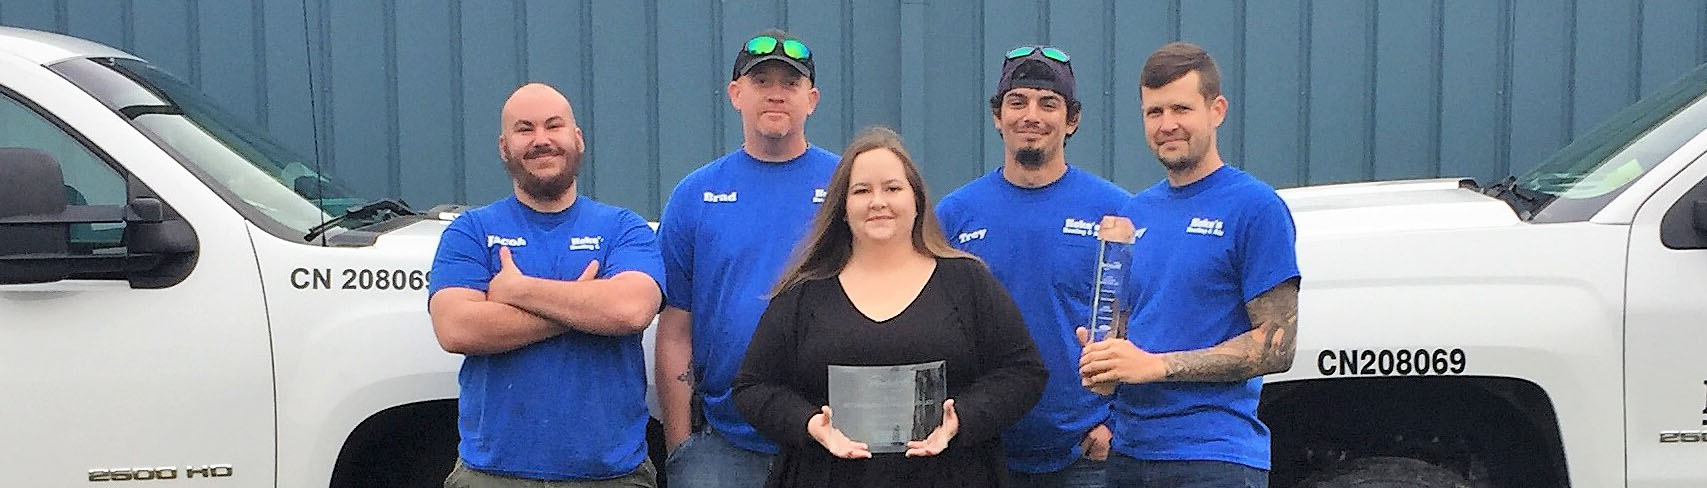 Hoke's Heating and Air Hawkinsville crew